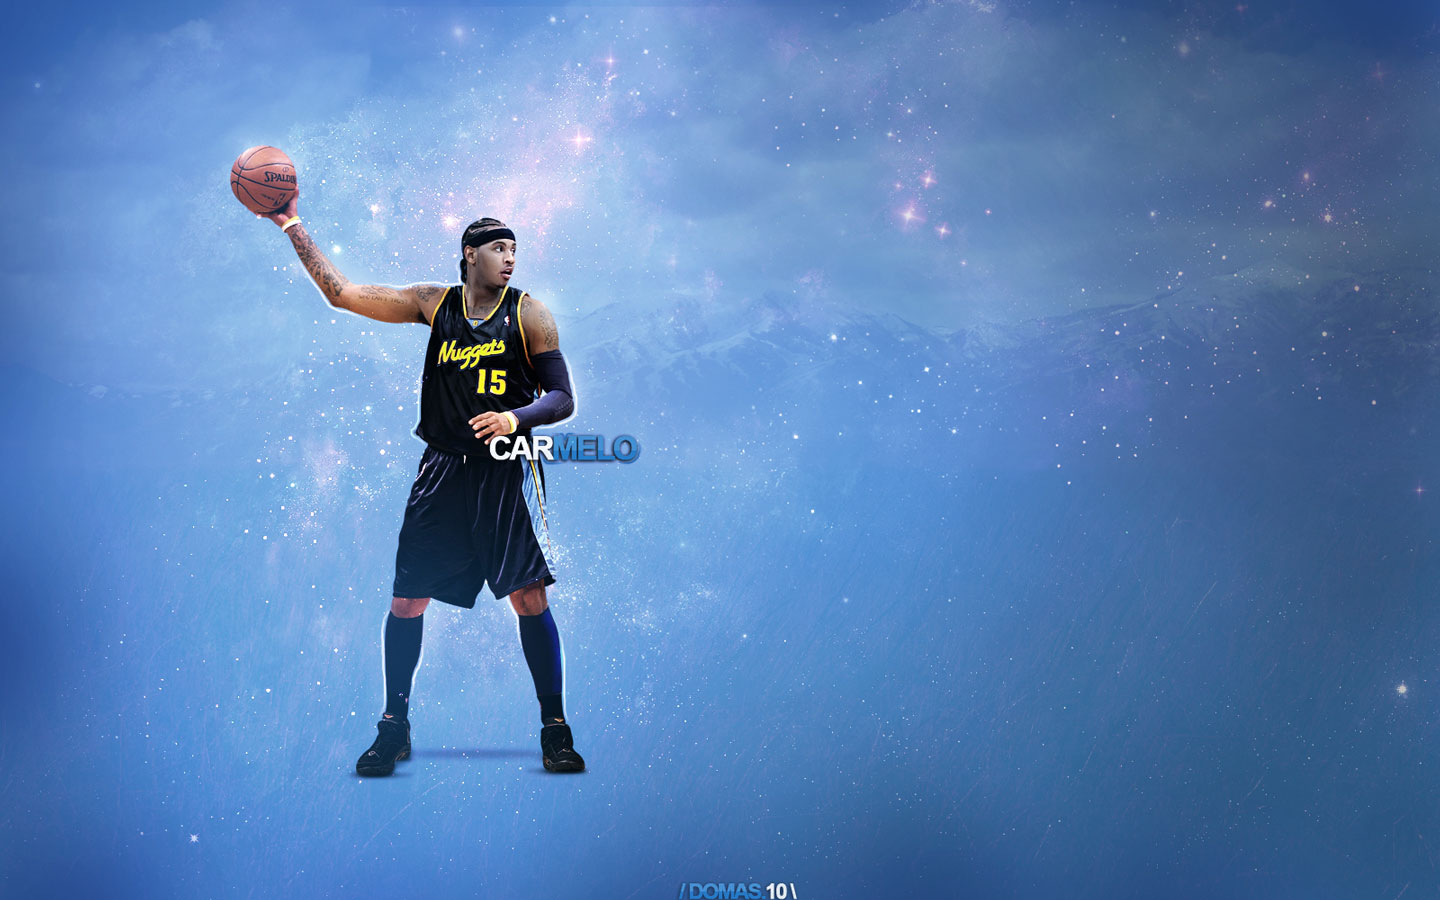 Carmelo Anthony Nuggets 2010 Widescreen Wallpaper